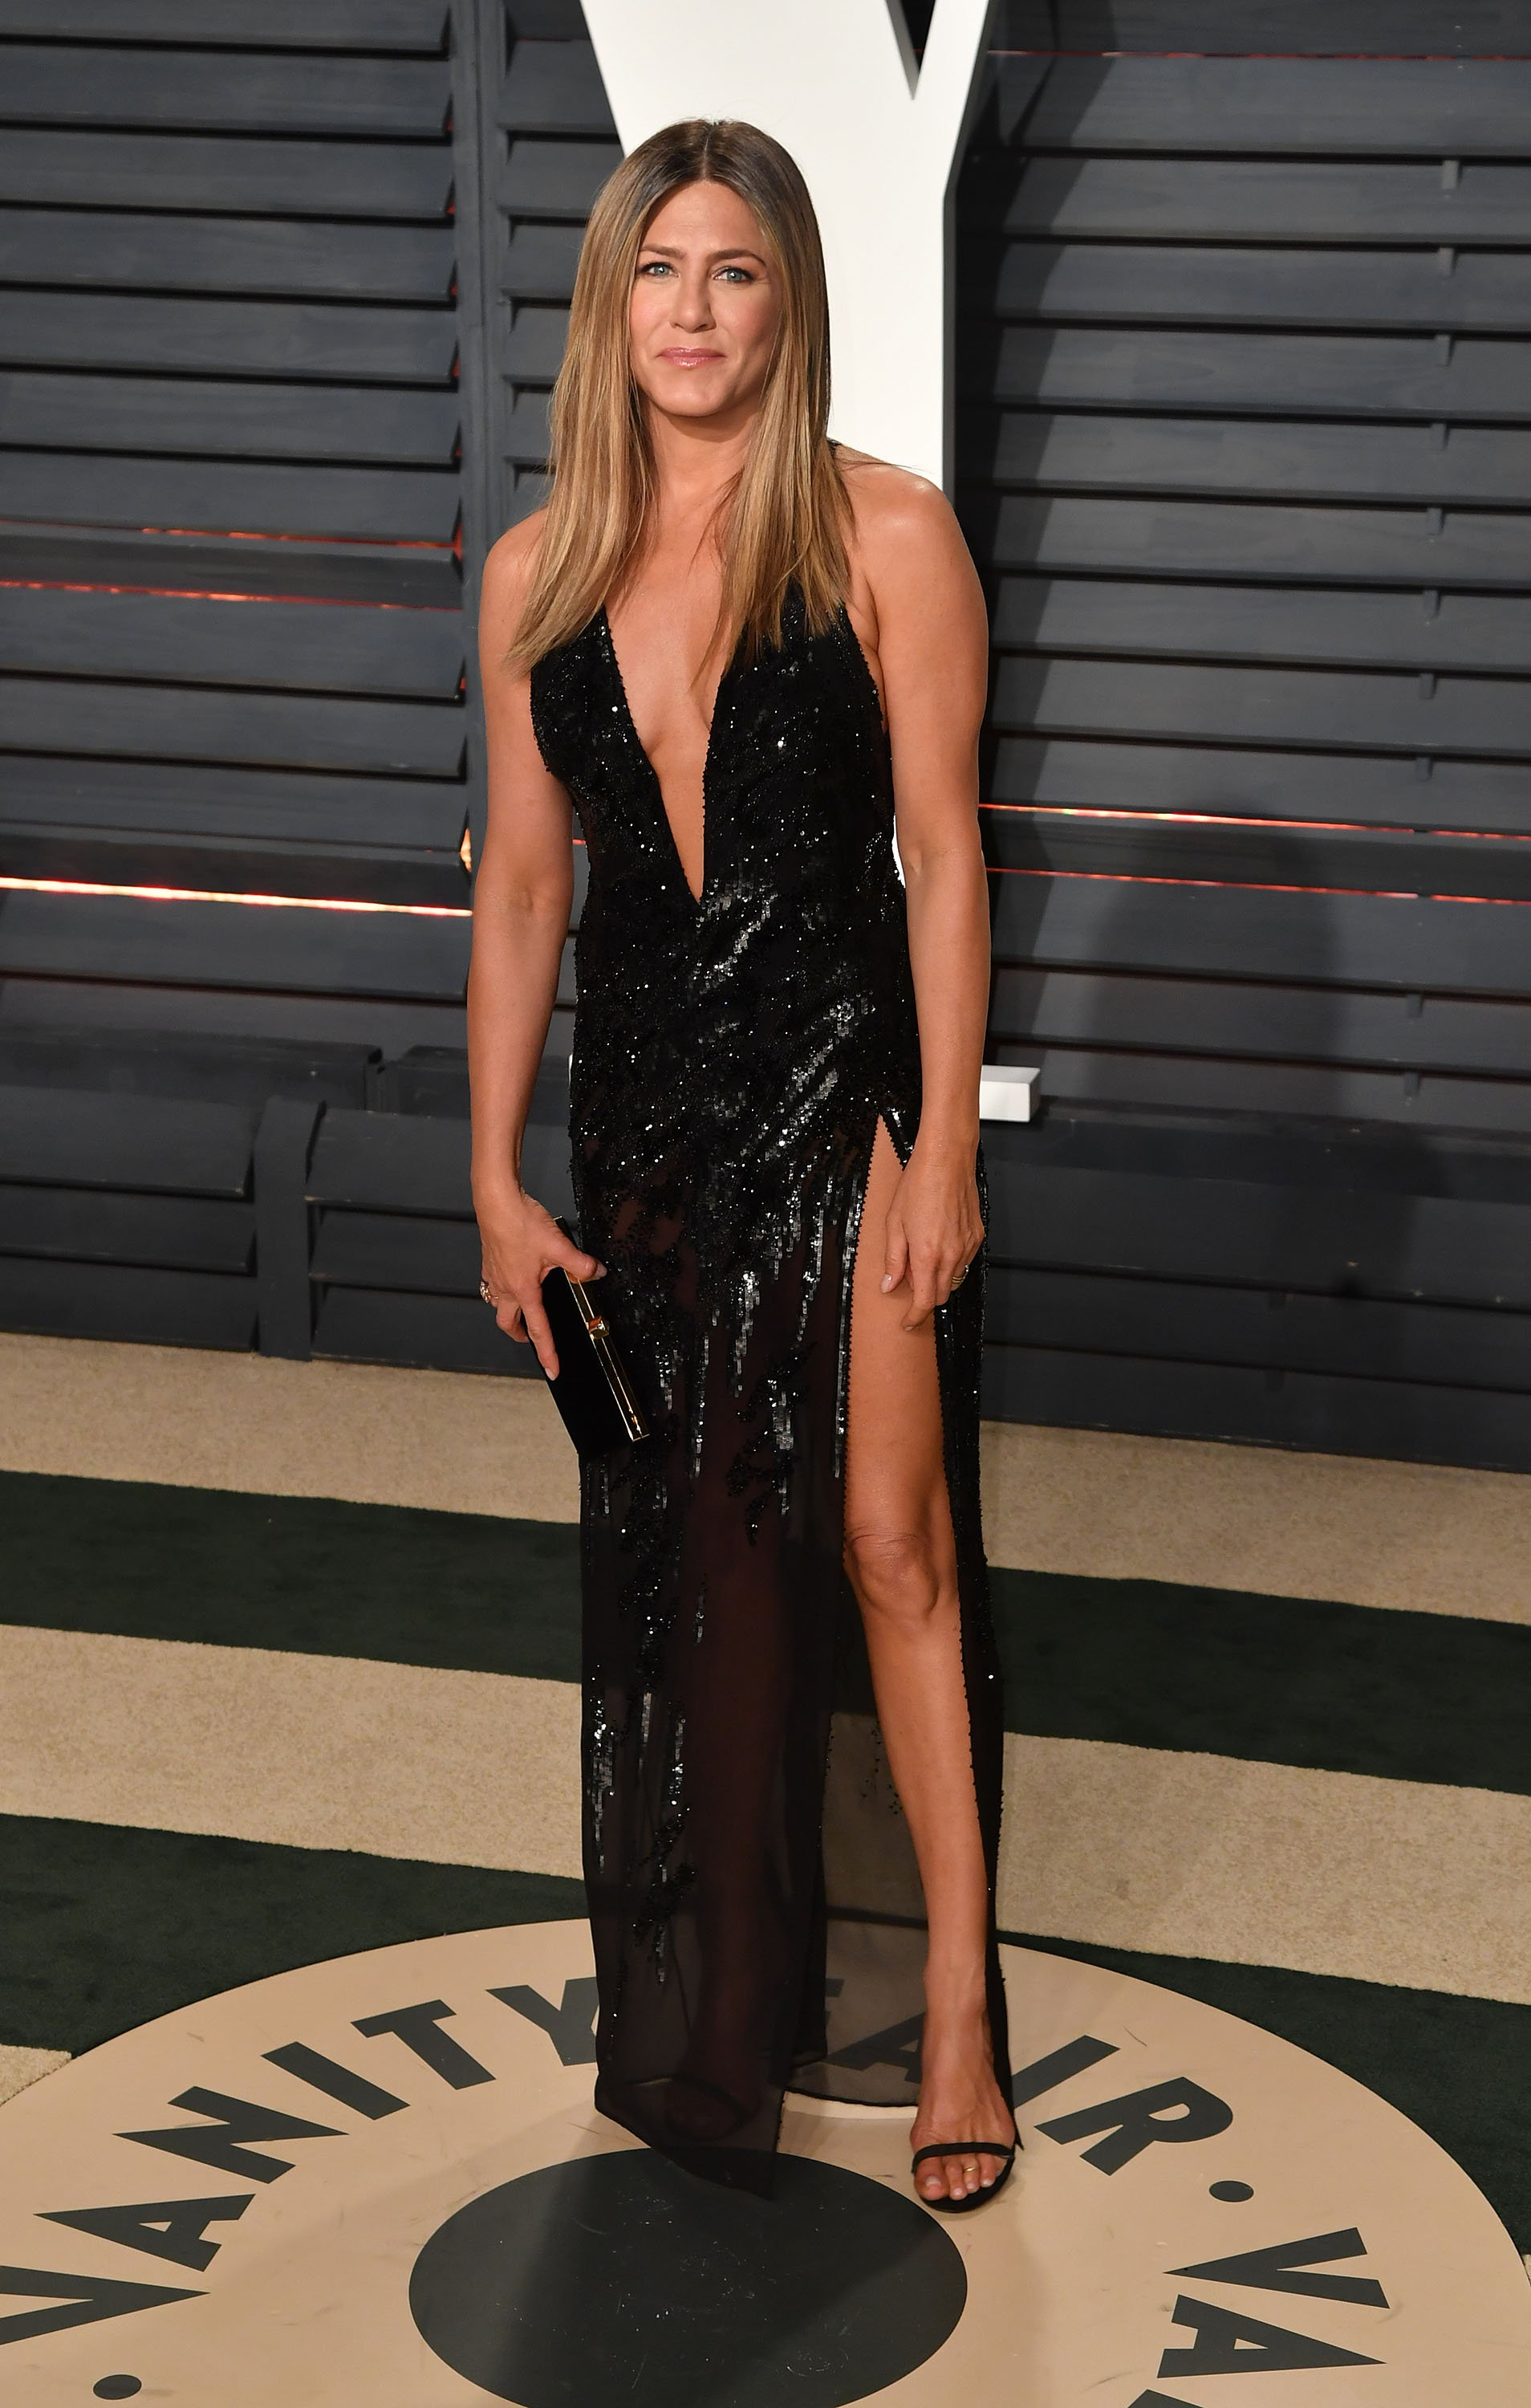 Jennifer Aniston attends the 2017 Vanity Fair Oscar Party. | Source: Getty Images